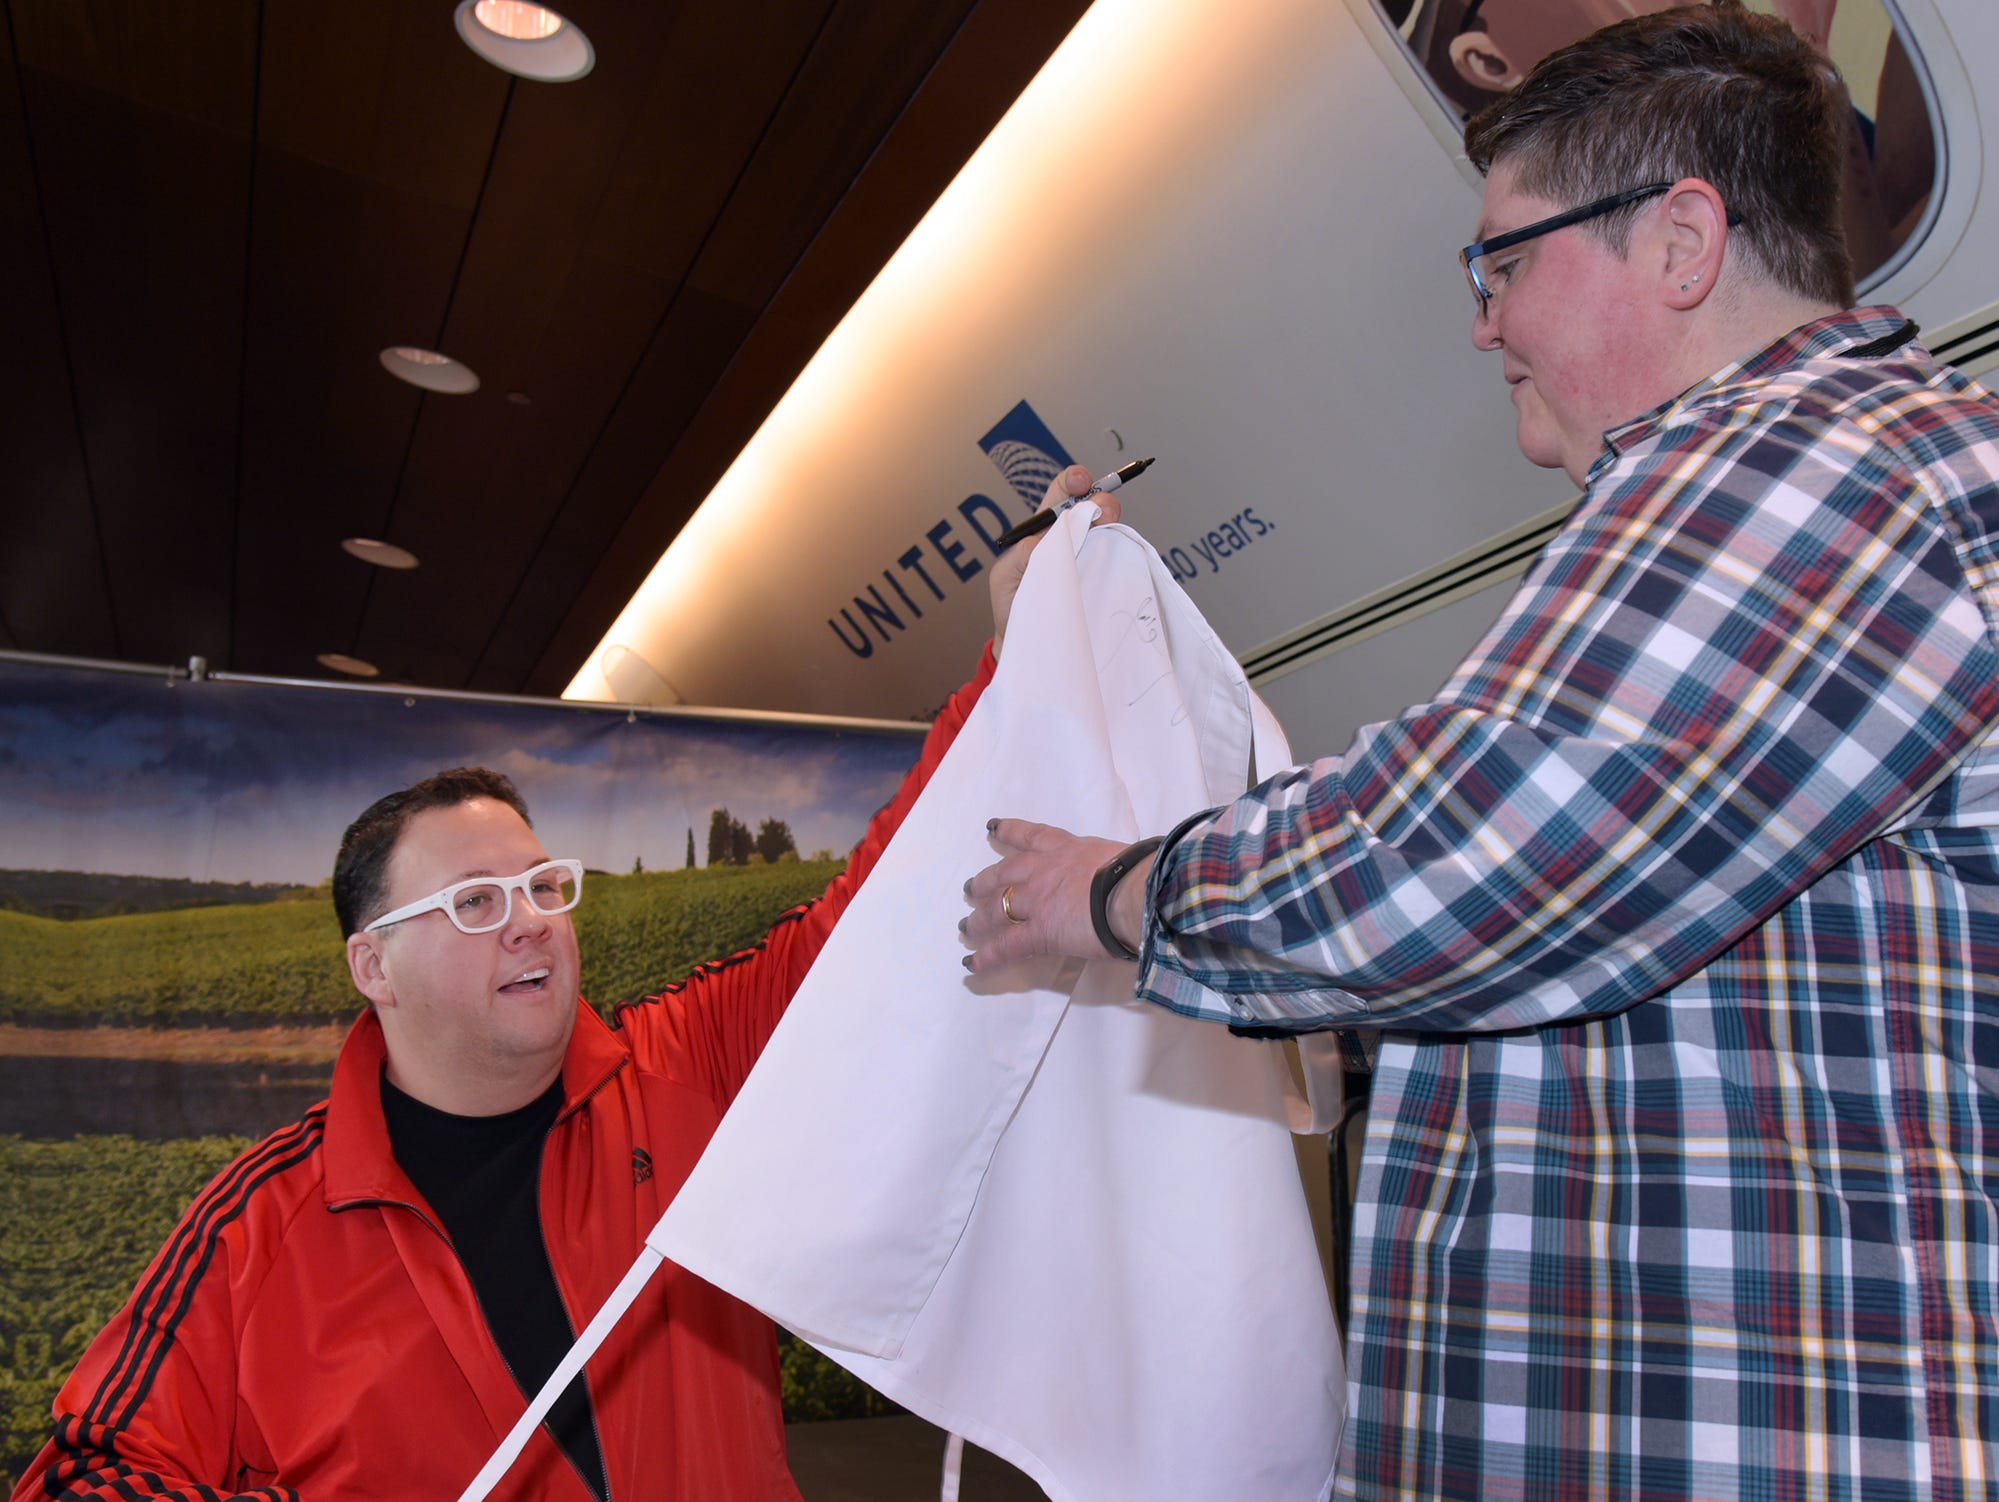 Graham Elliot, TV personality and chef, talked about his love of Chicago's dining scene.